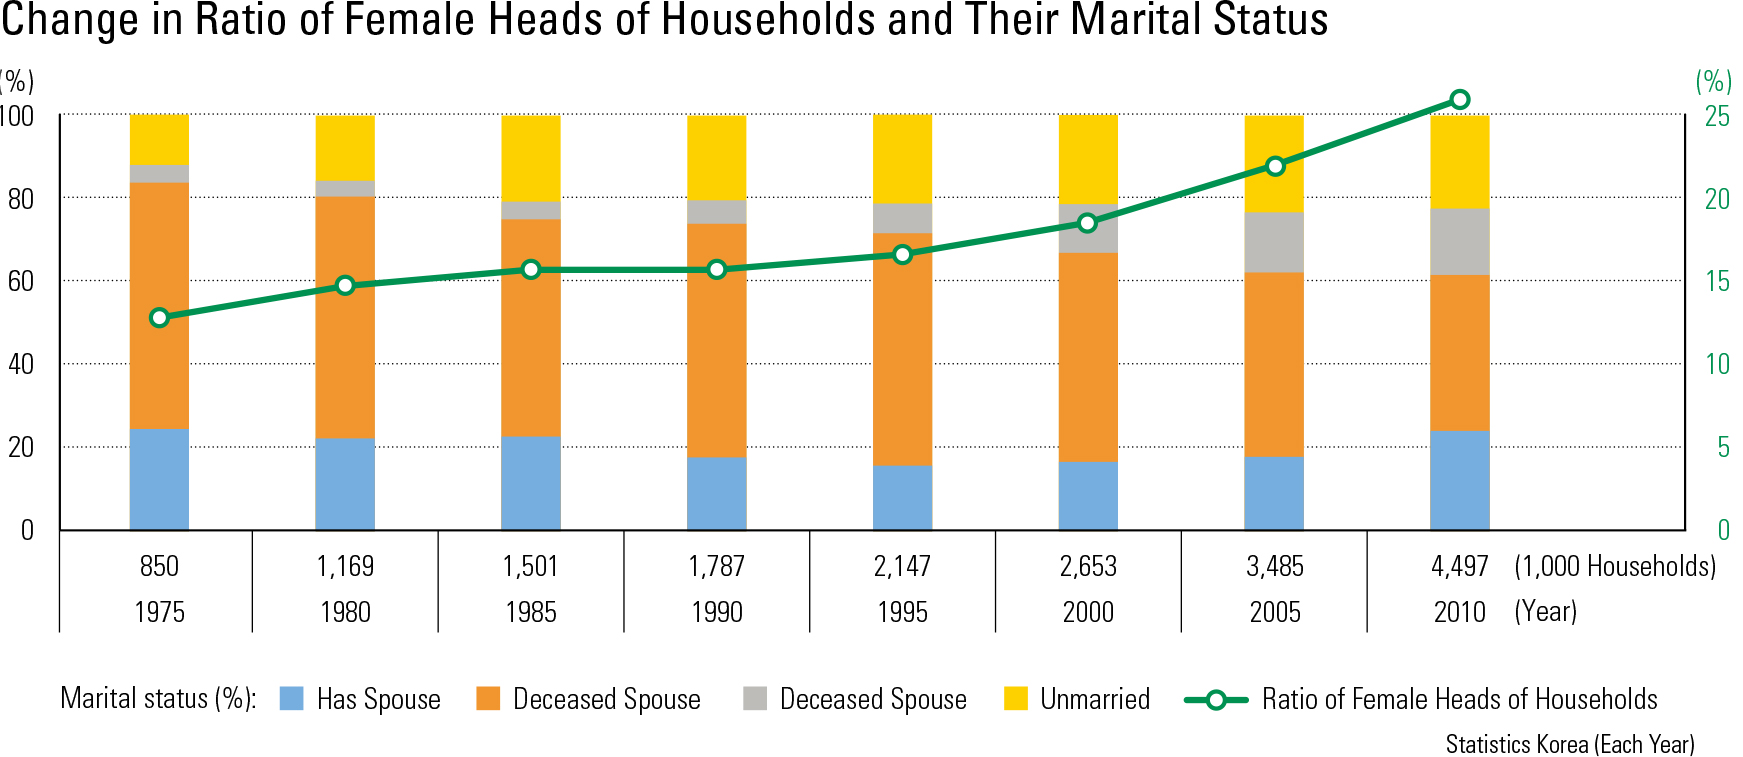 Change in Ratio of Female Heads of Households and Their Marital Status